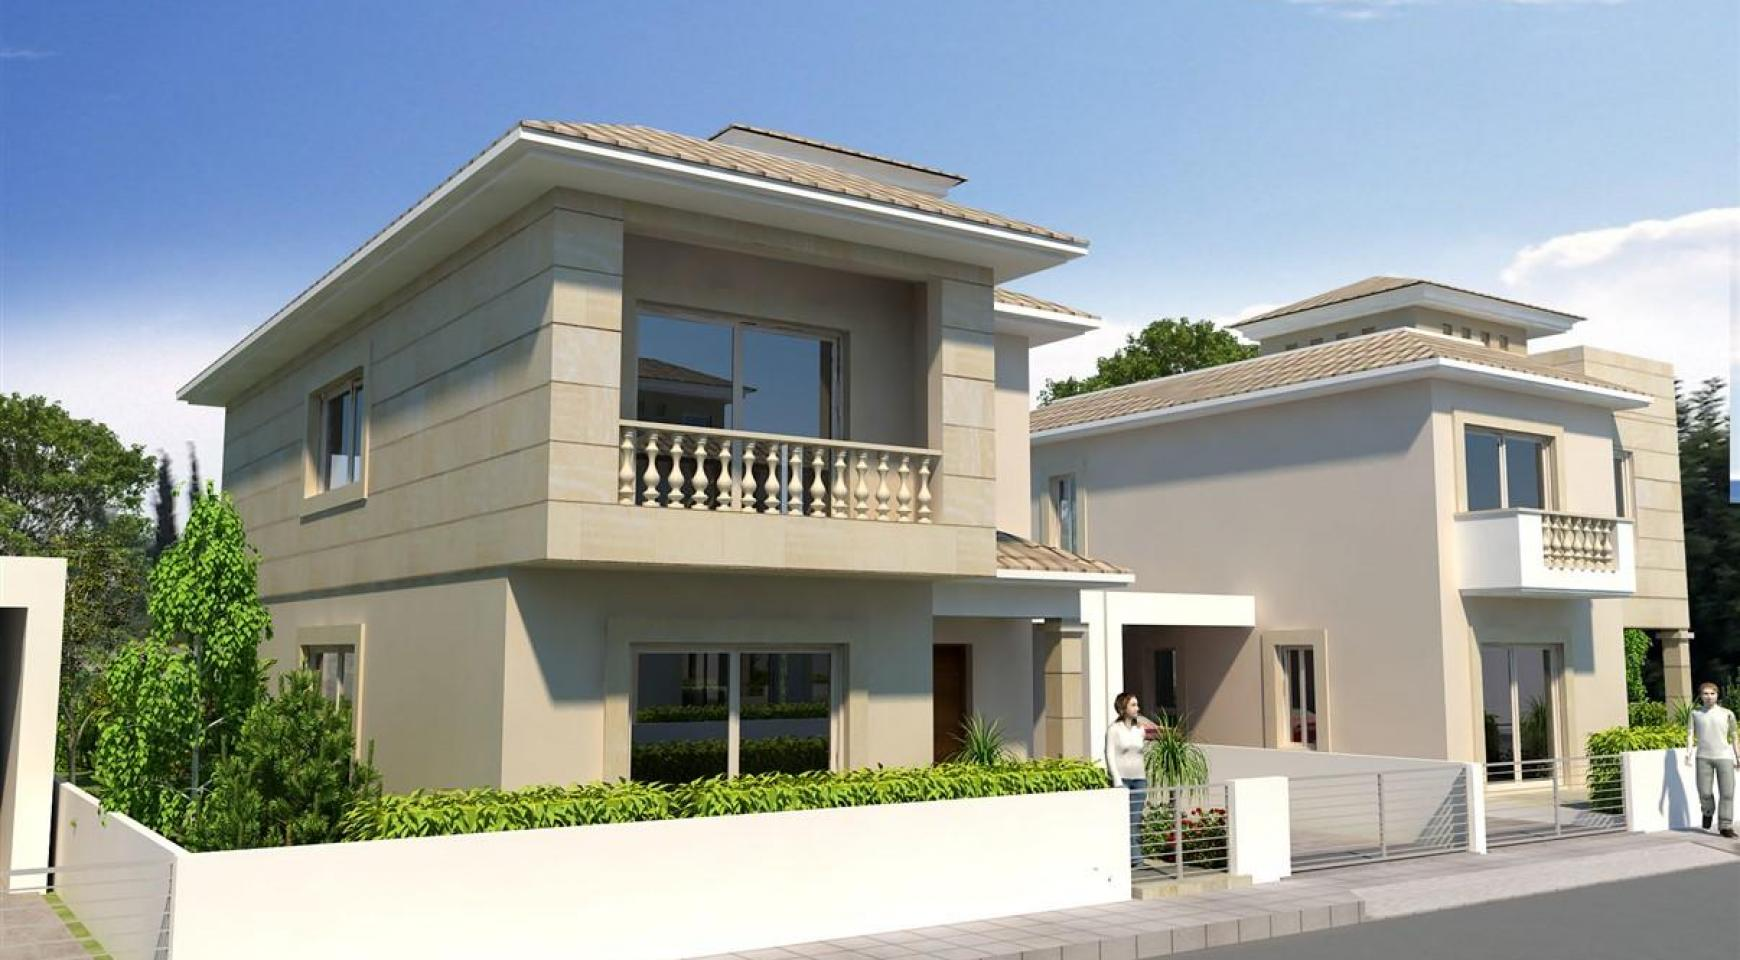 3 Bedroom Villa in New Project in Paphos - 8